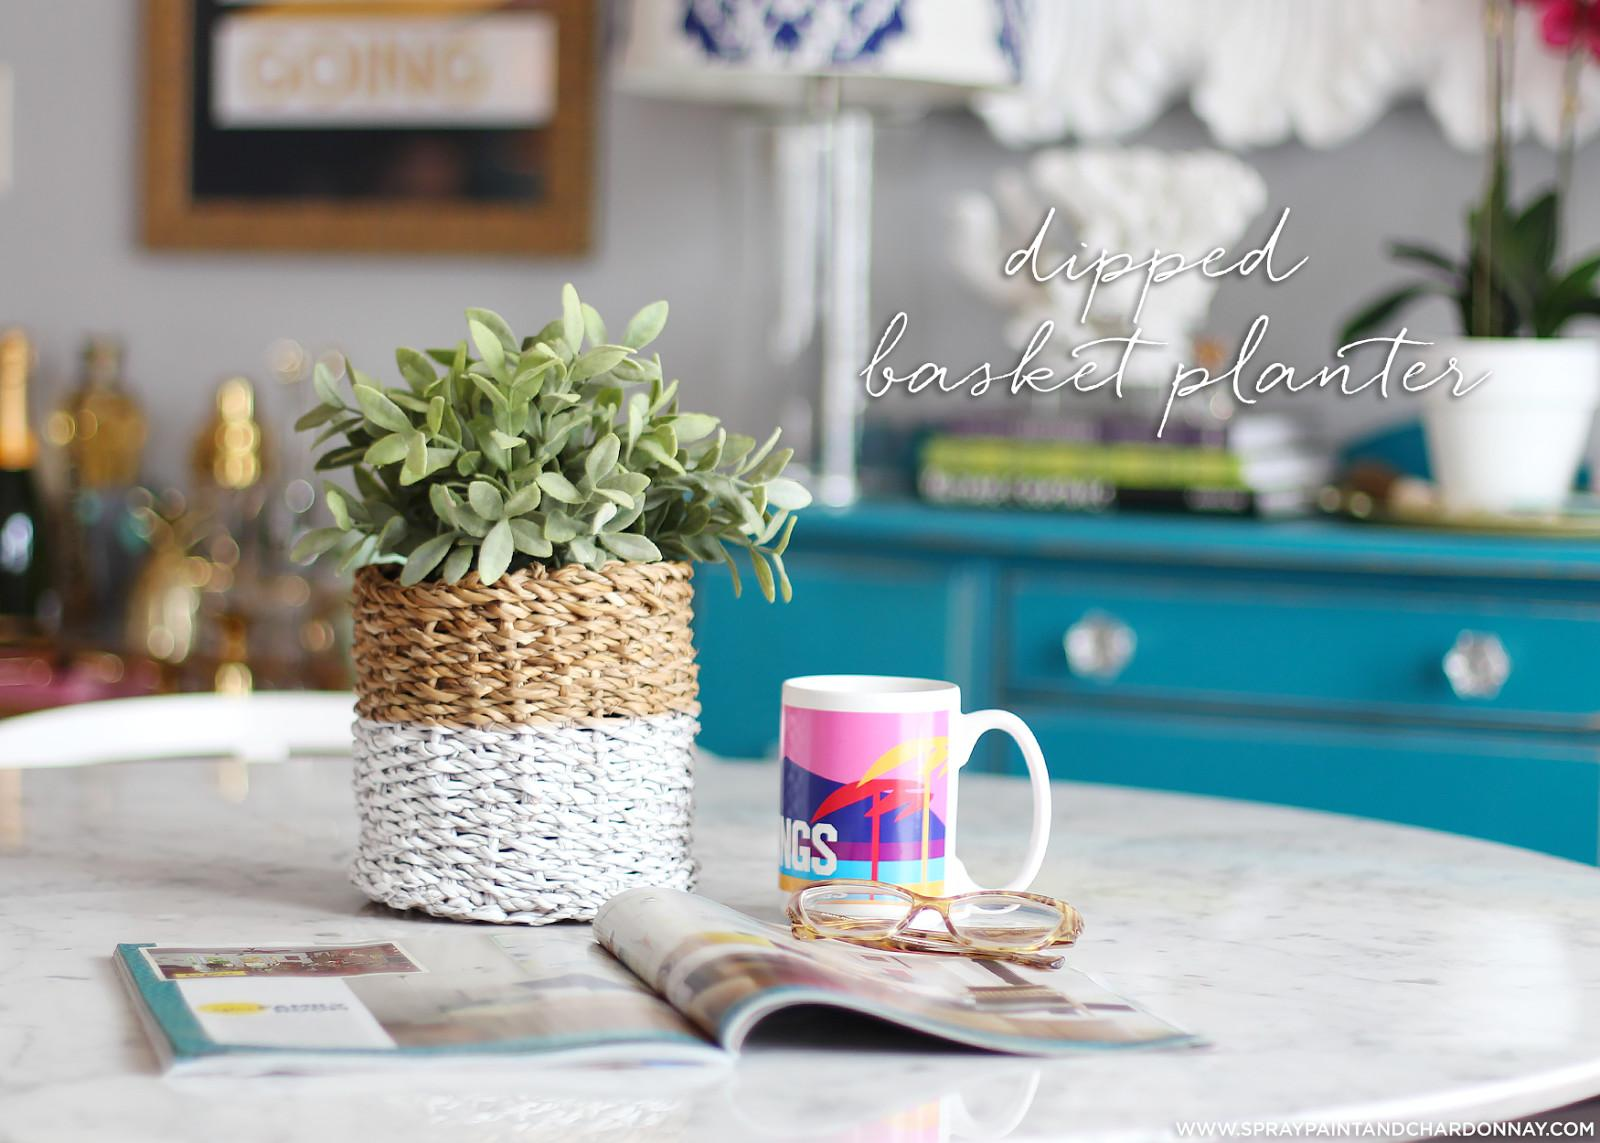 Diy Dipped Basket Planter Spray Paint Chardonnay